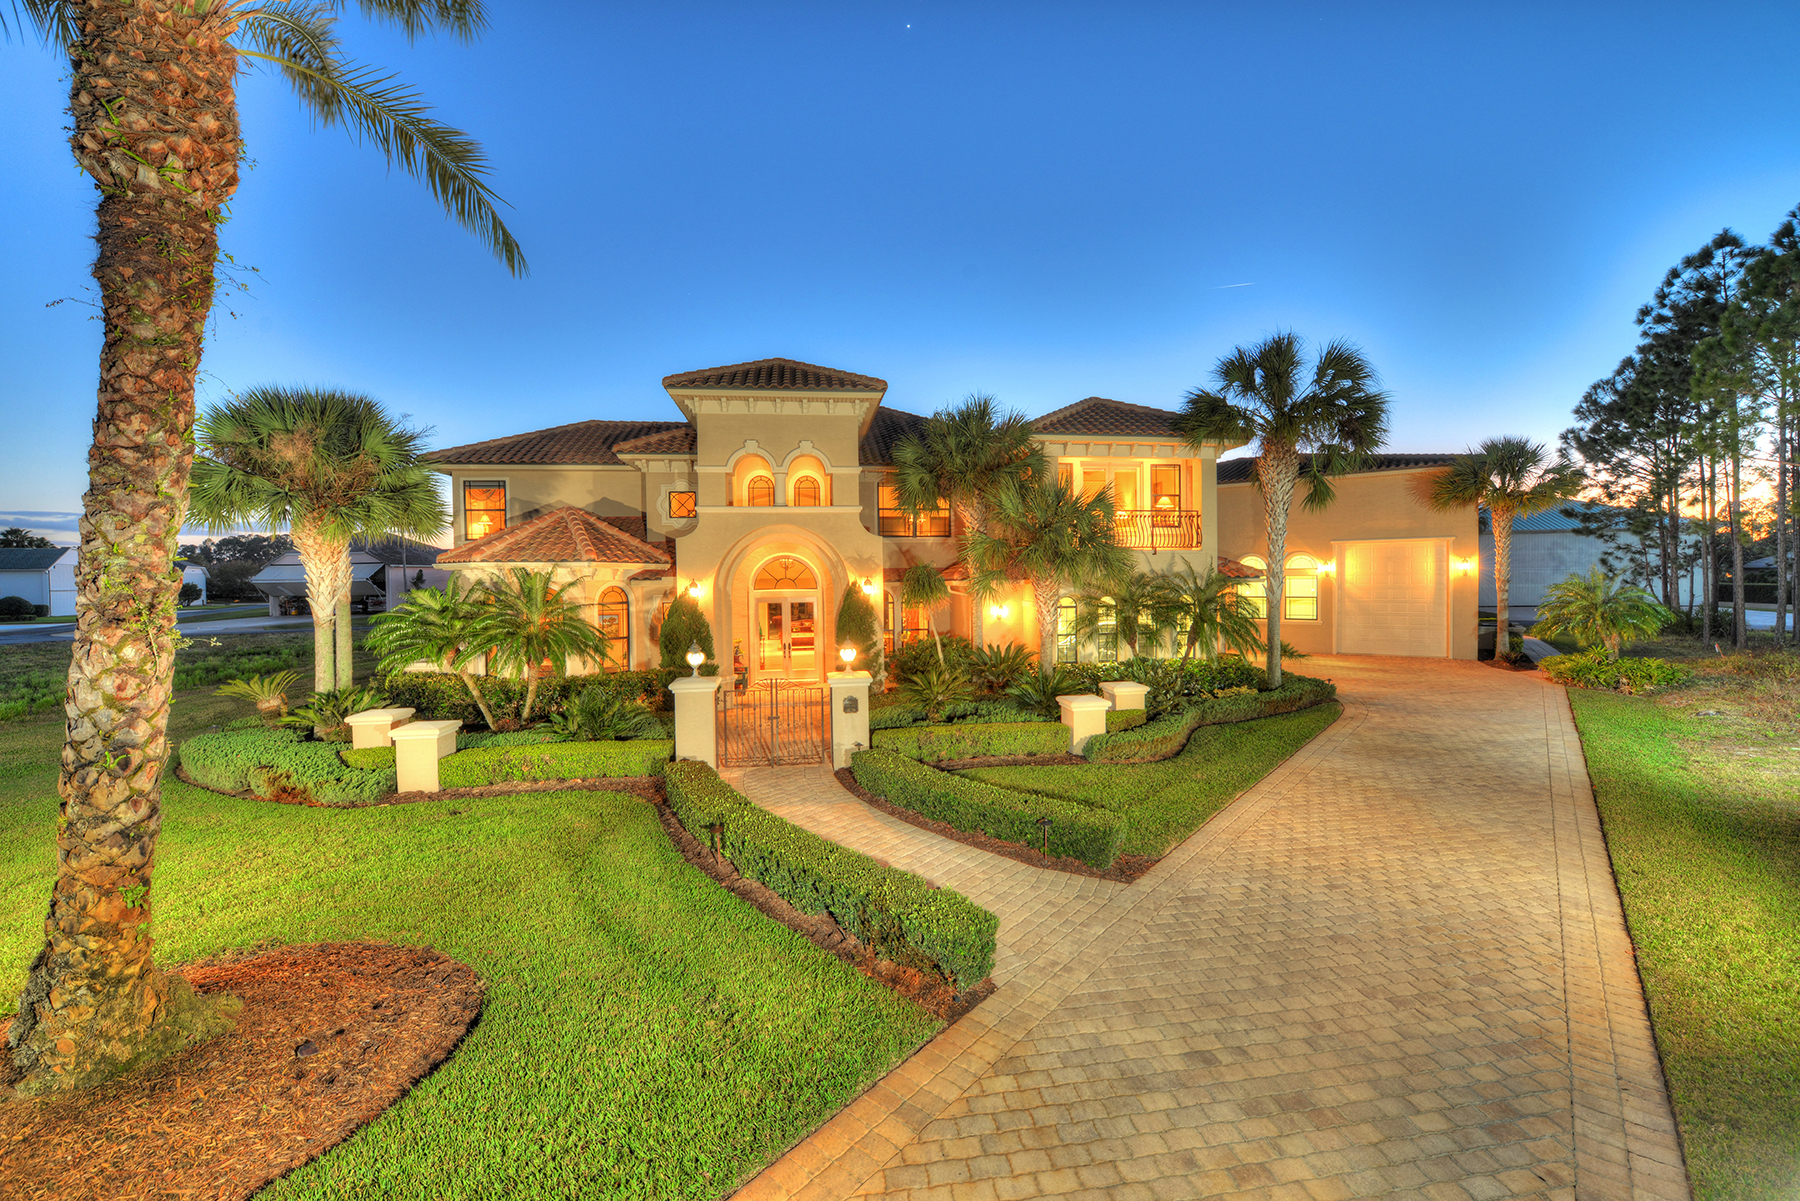 Single Family Home for Sale at SPRUCE CREEK AND THE BEACHES 1809 Avanti Ct Port Orange, Florida, 32128 United States